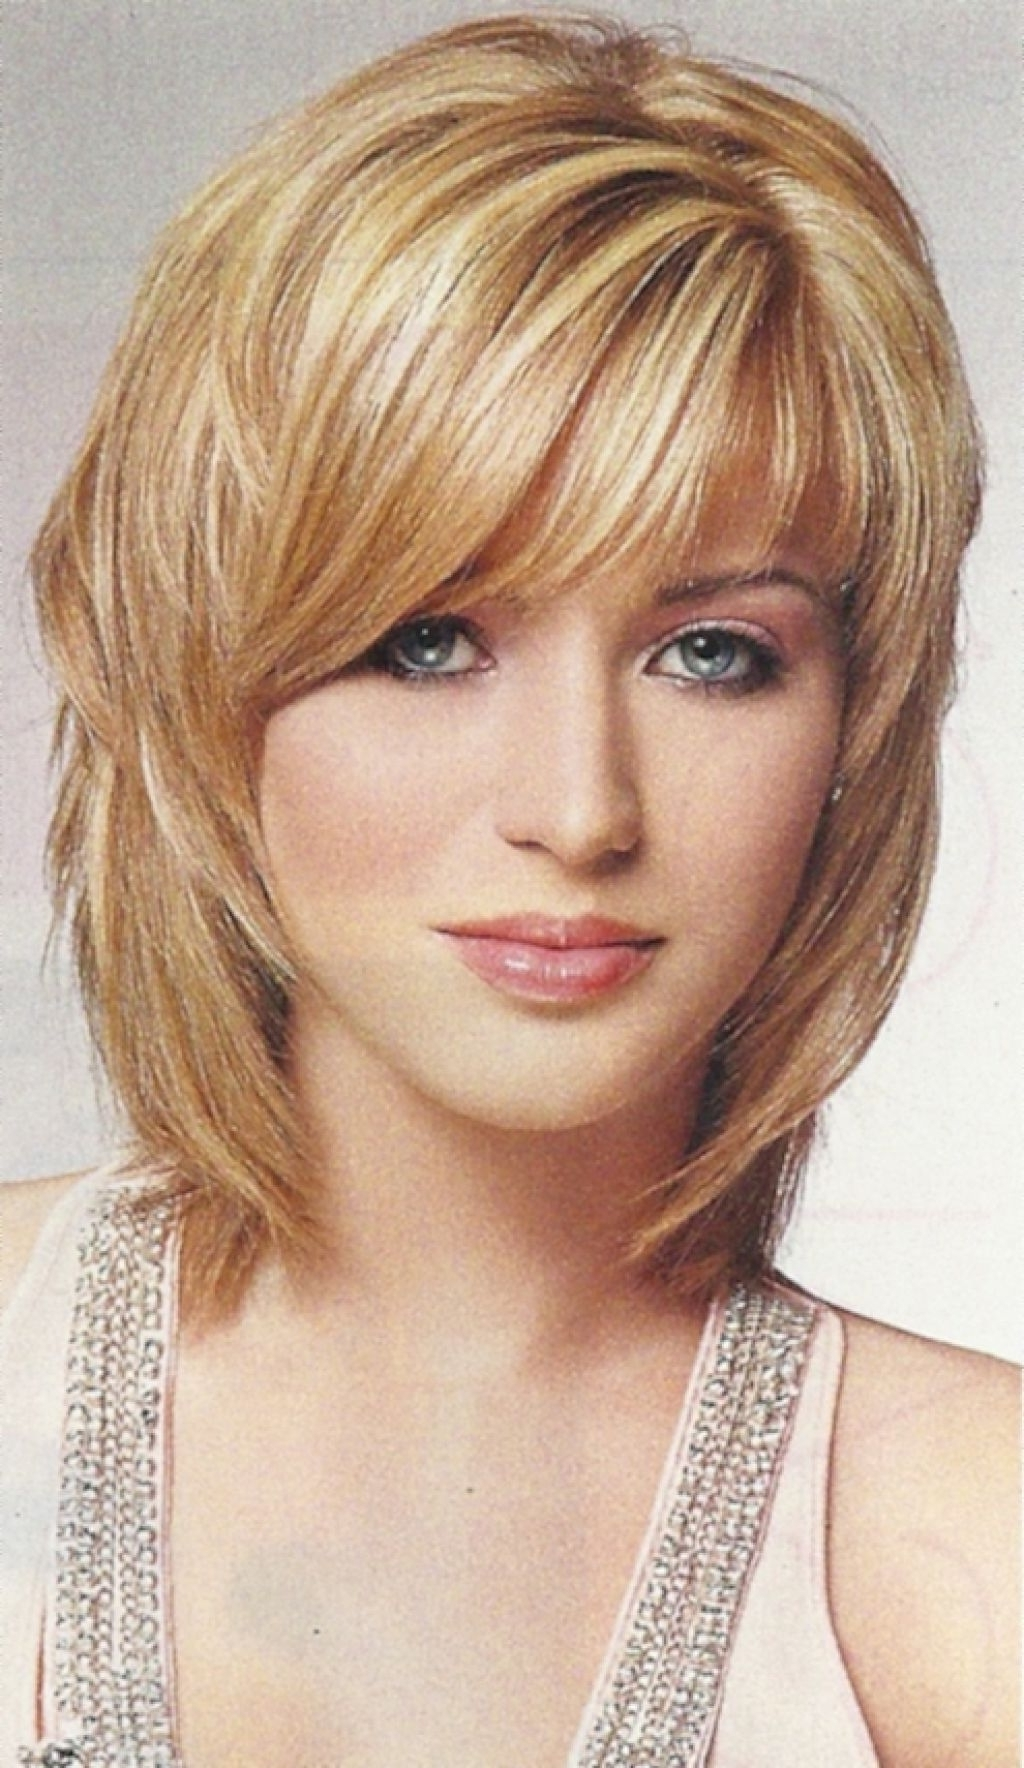 Medium Long Shaggy Hairstyle Medium Shag Hairstyles Women Pertaining To Fashionable Shaggy Hairstyles For Oval Faces (View 2 of 15)